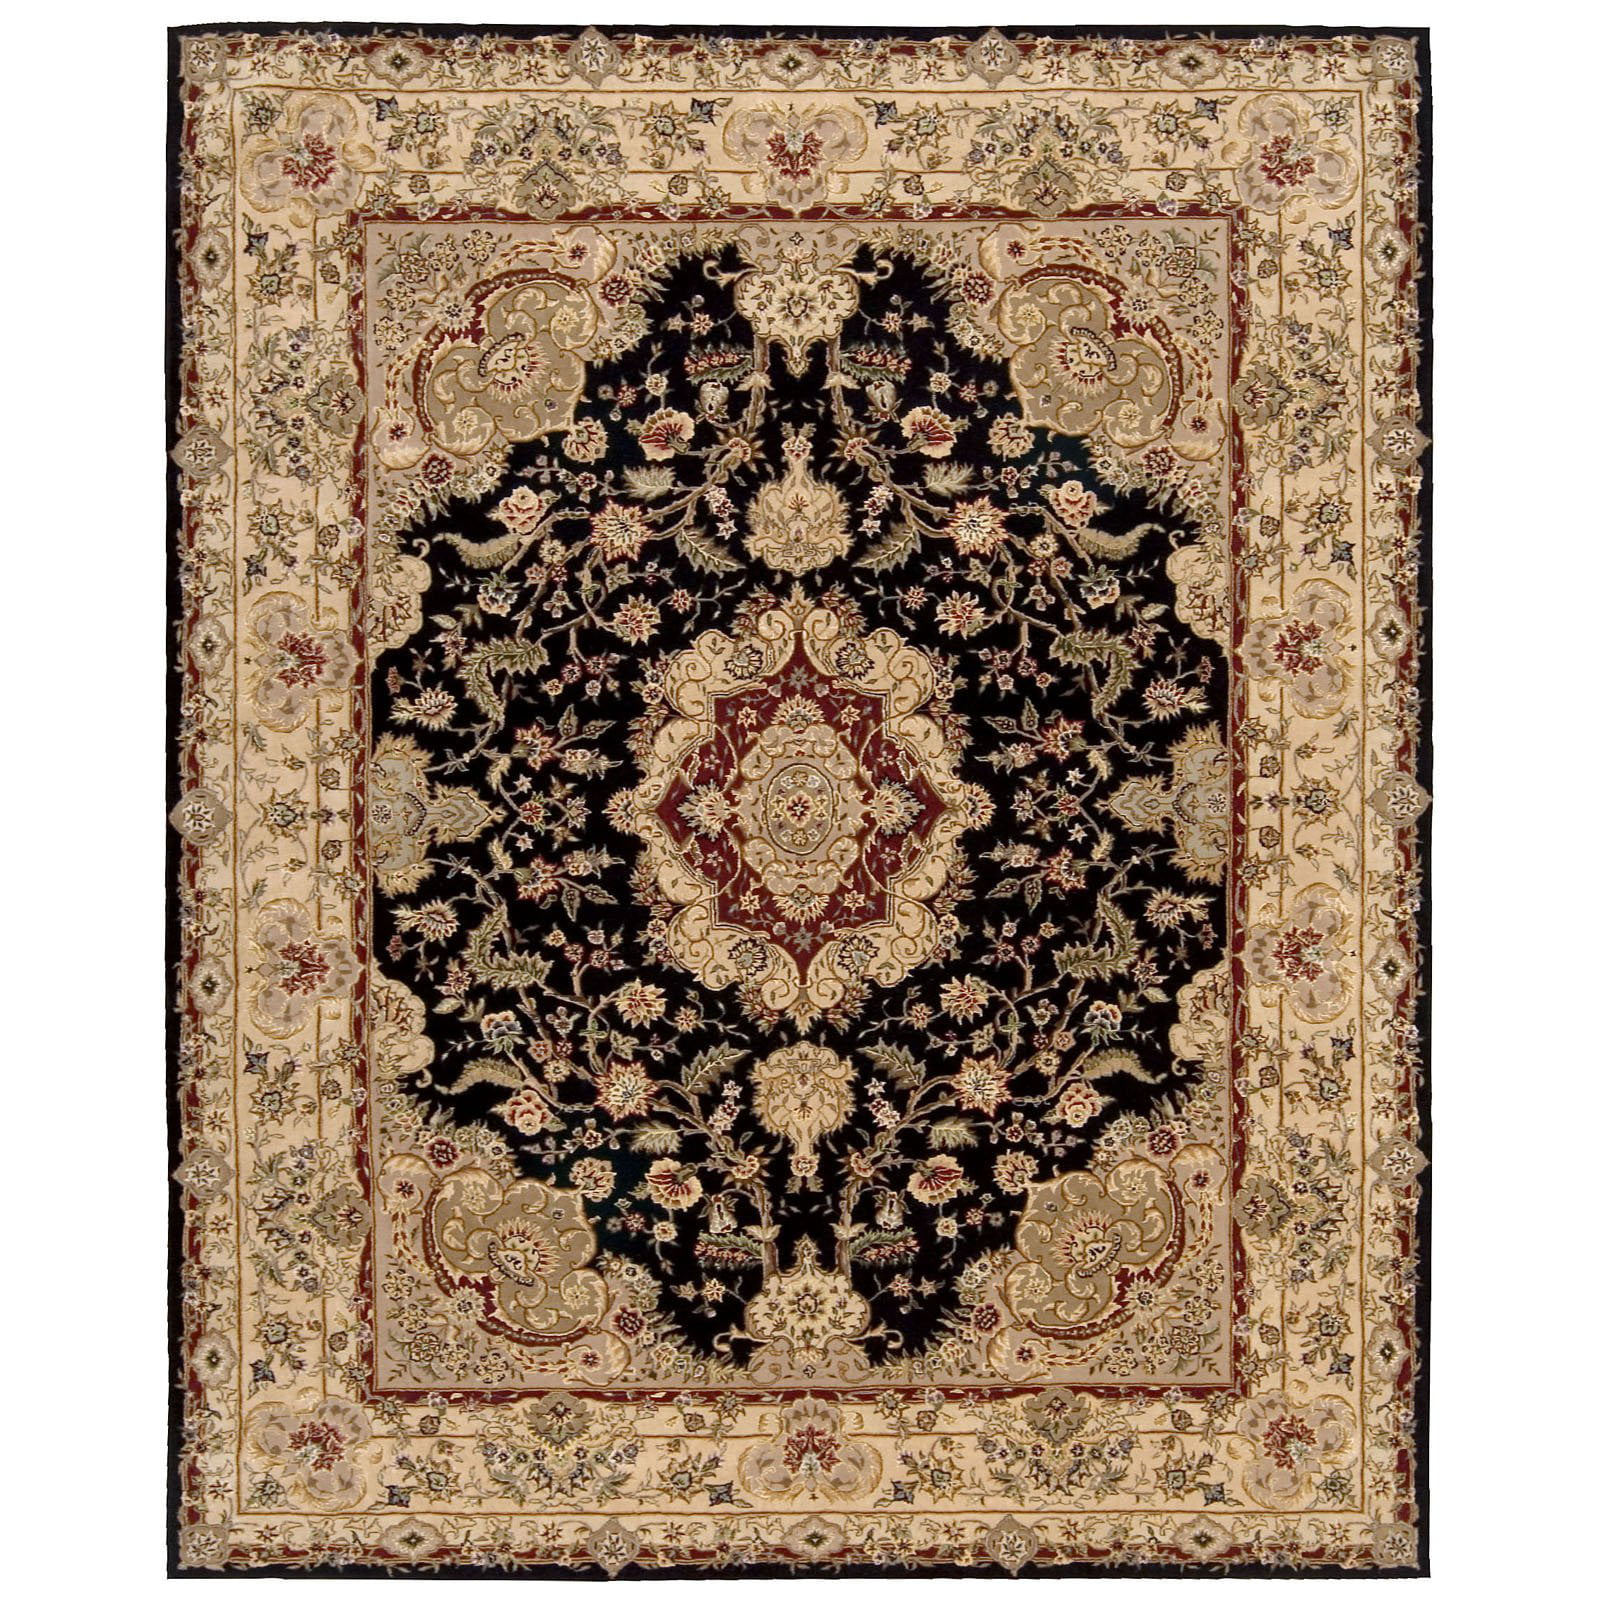 Nourison 2000 2028 Oriental Rug Black-3.9 x 5.9 ft. by Overstock